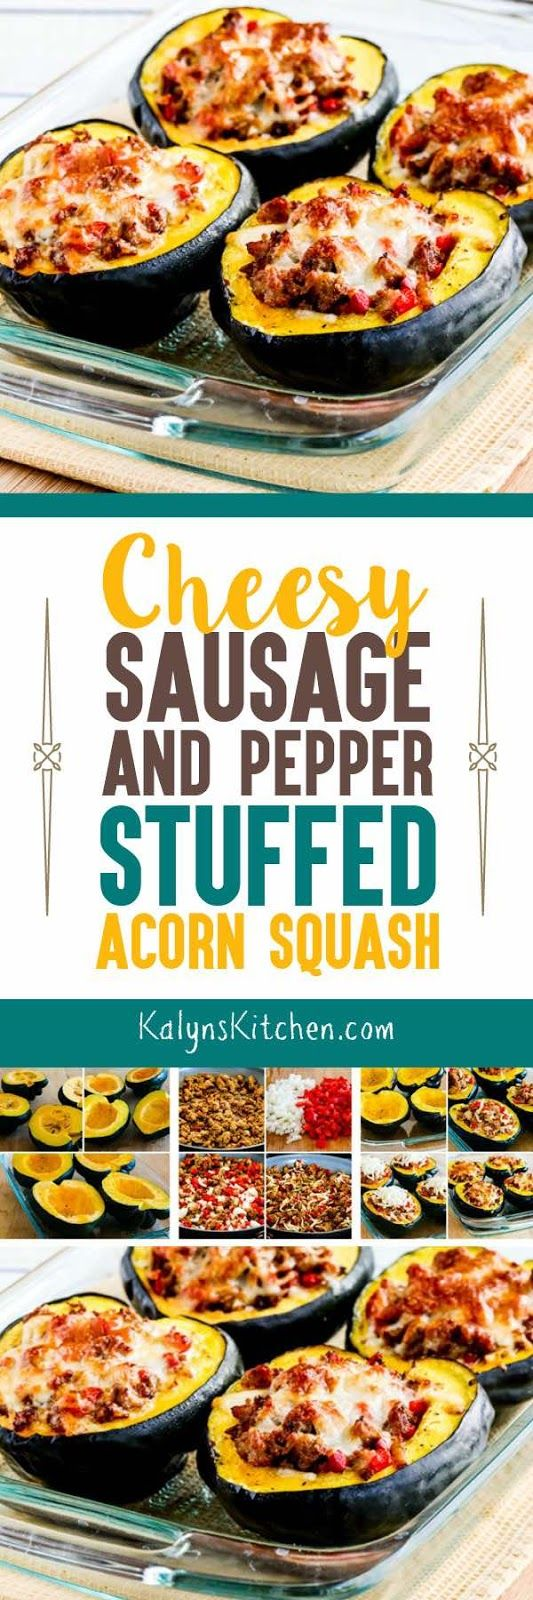 Cheesy Sausage and Pepper Stuffed Acorn Squash is delicious for a fall or winter dinner idea, and I was pleasantly surprised to discover that acorn squash is lower in carbs than I had thought. This recipe is low-glycemic, South Beach Diet friendly, and gluten-free if you make sure to use gluten-free sausage. [found on KalynsKitchen.com]